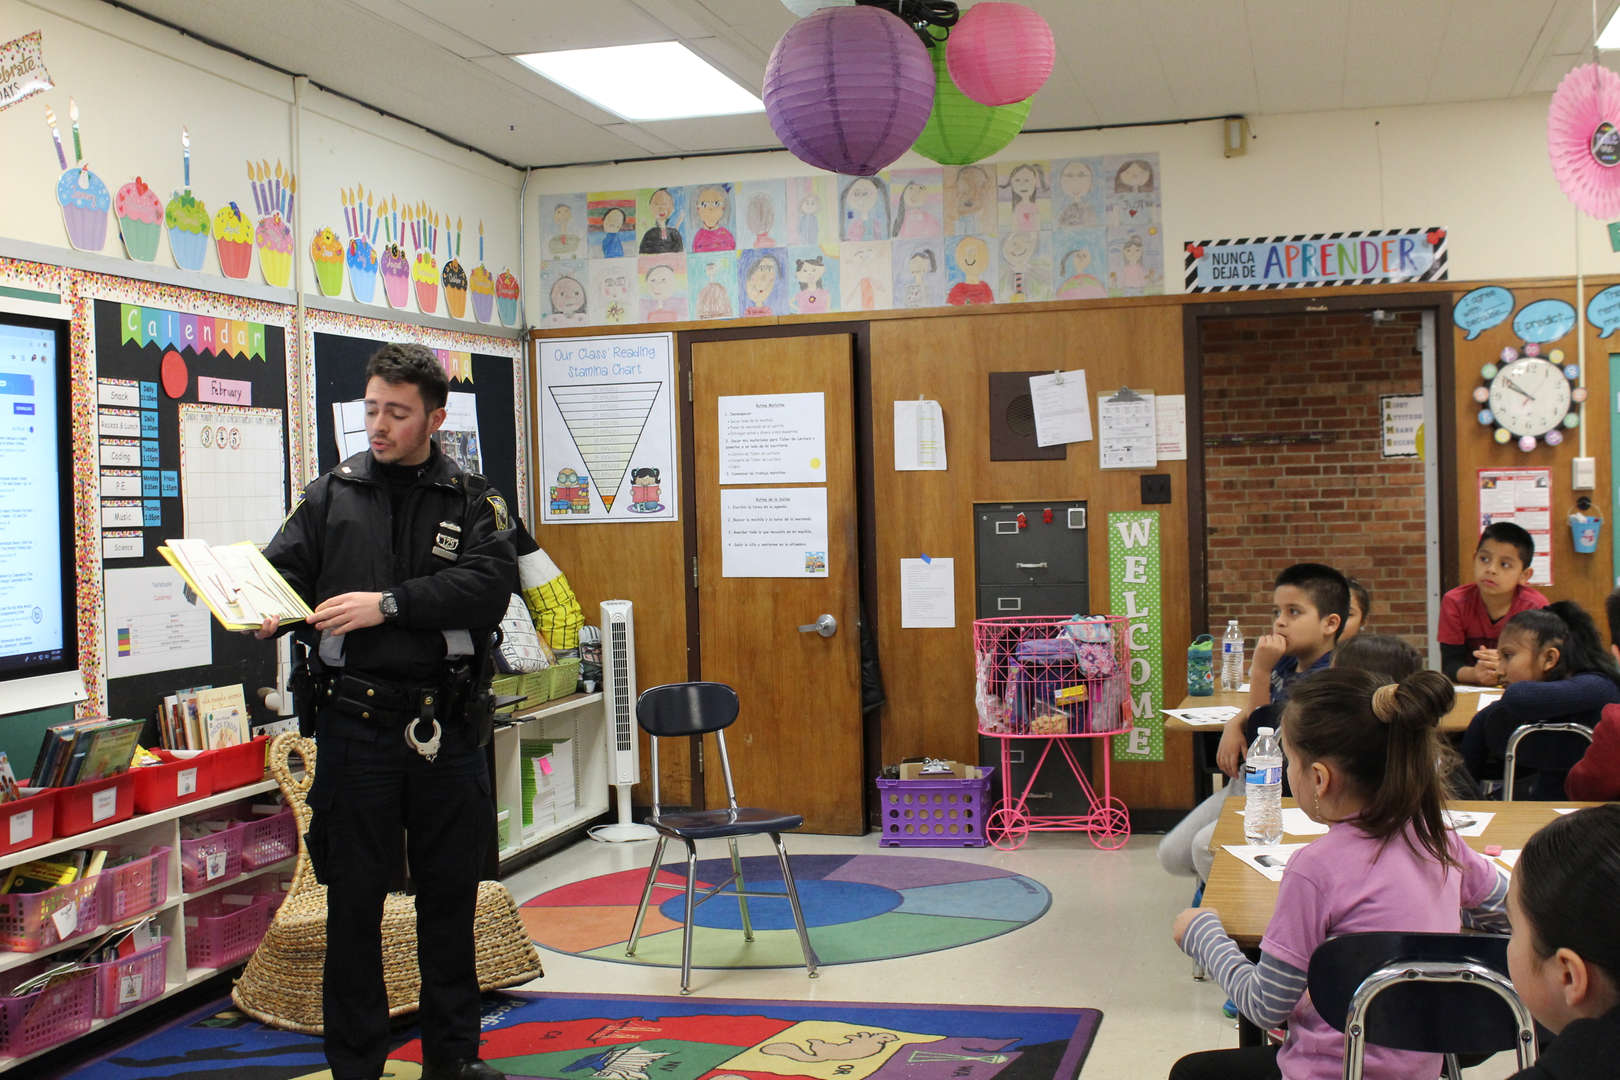 Police Officer reads to children